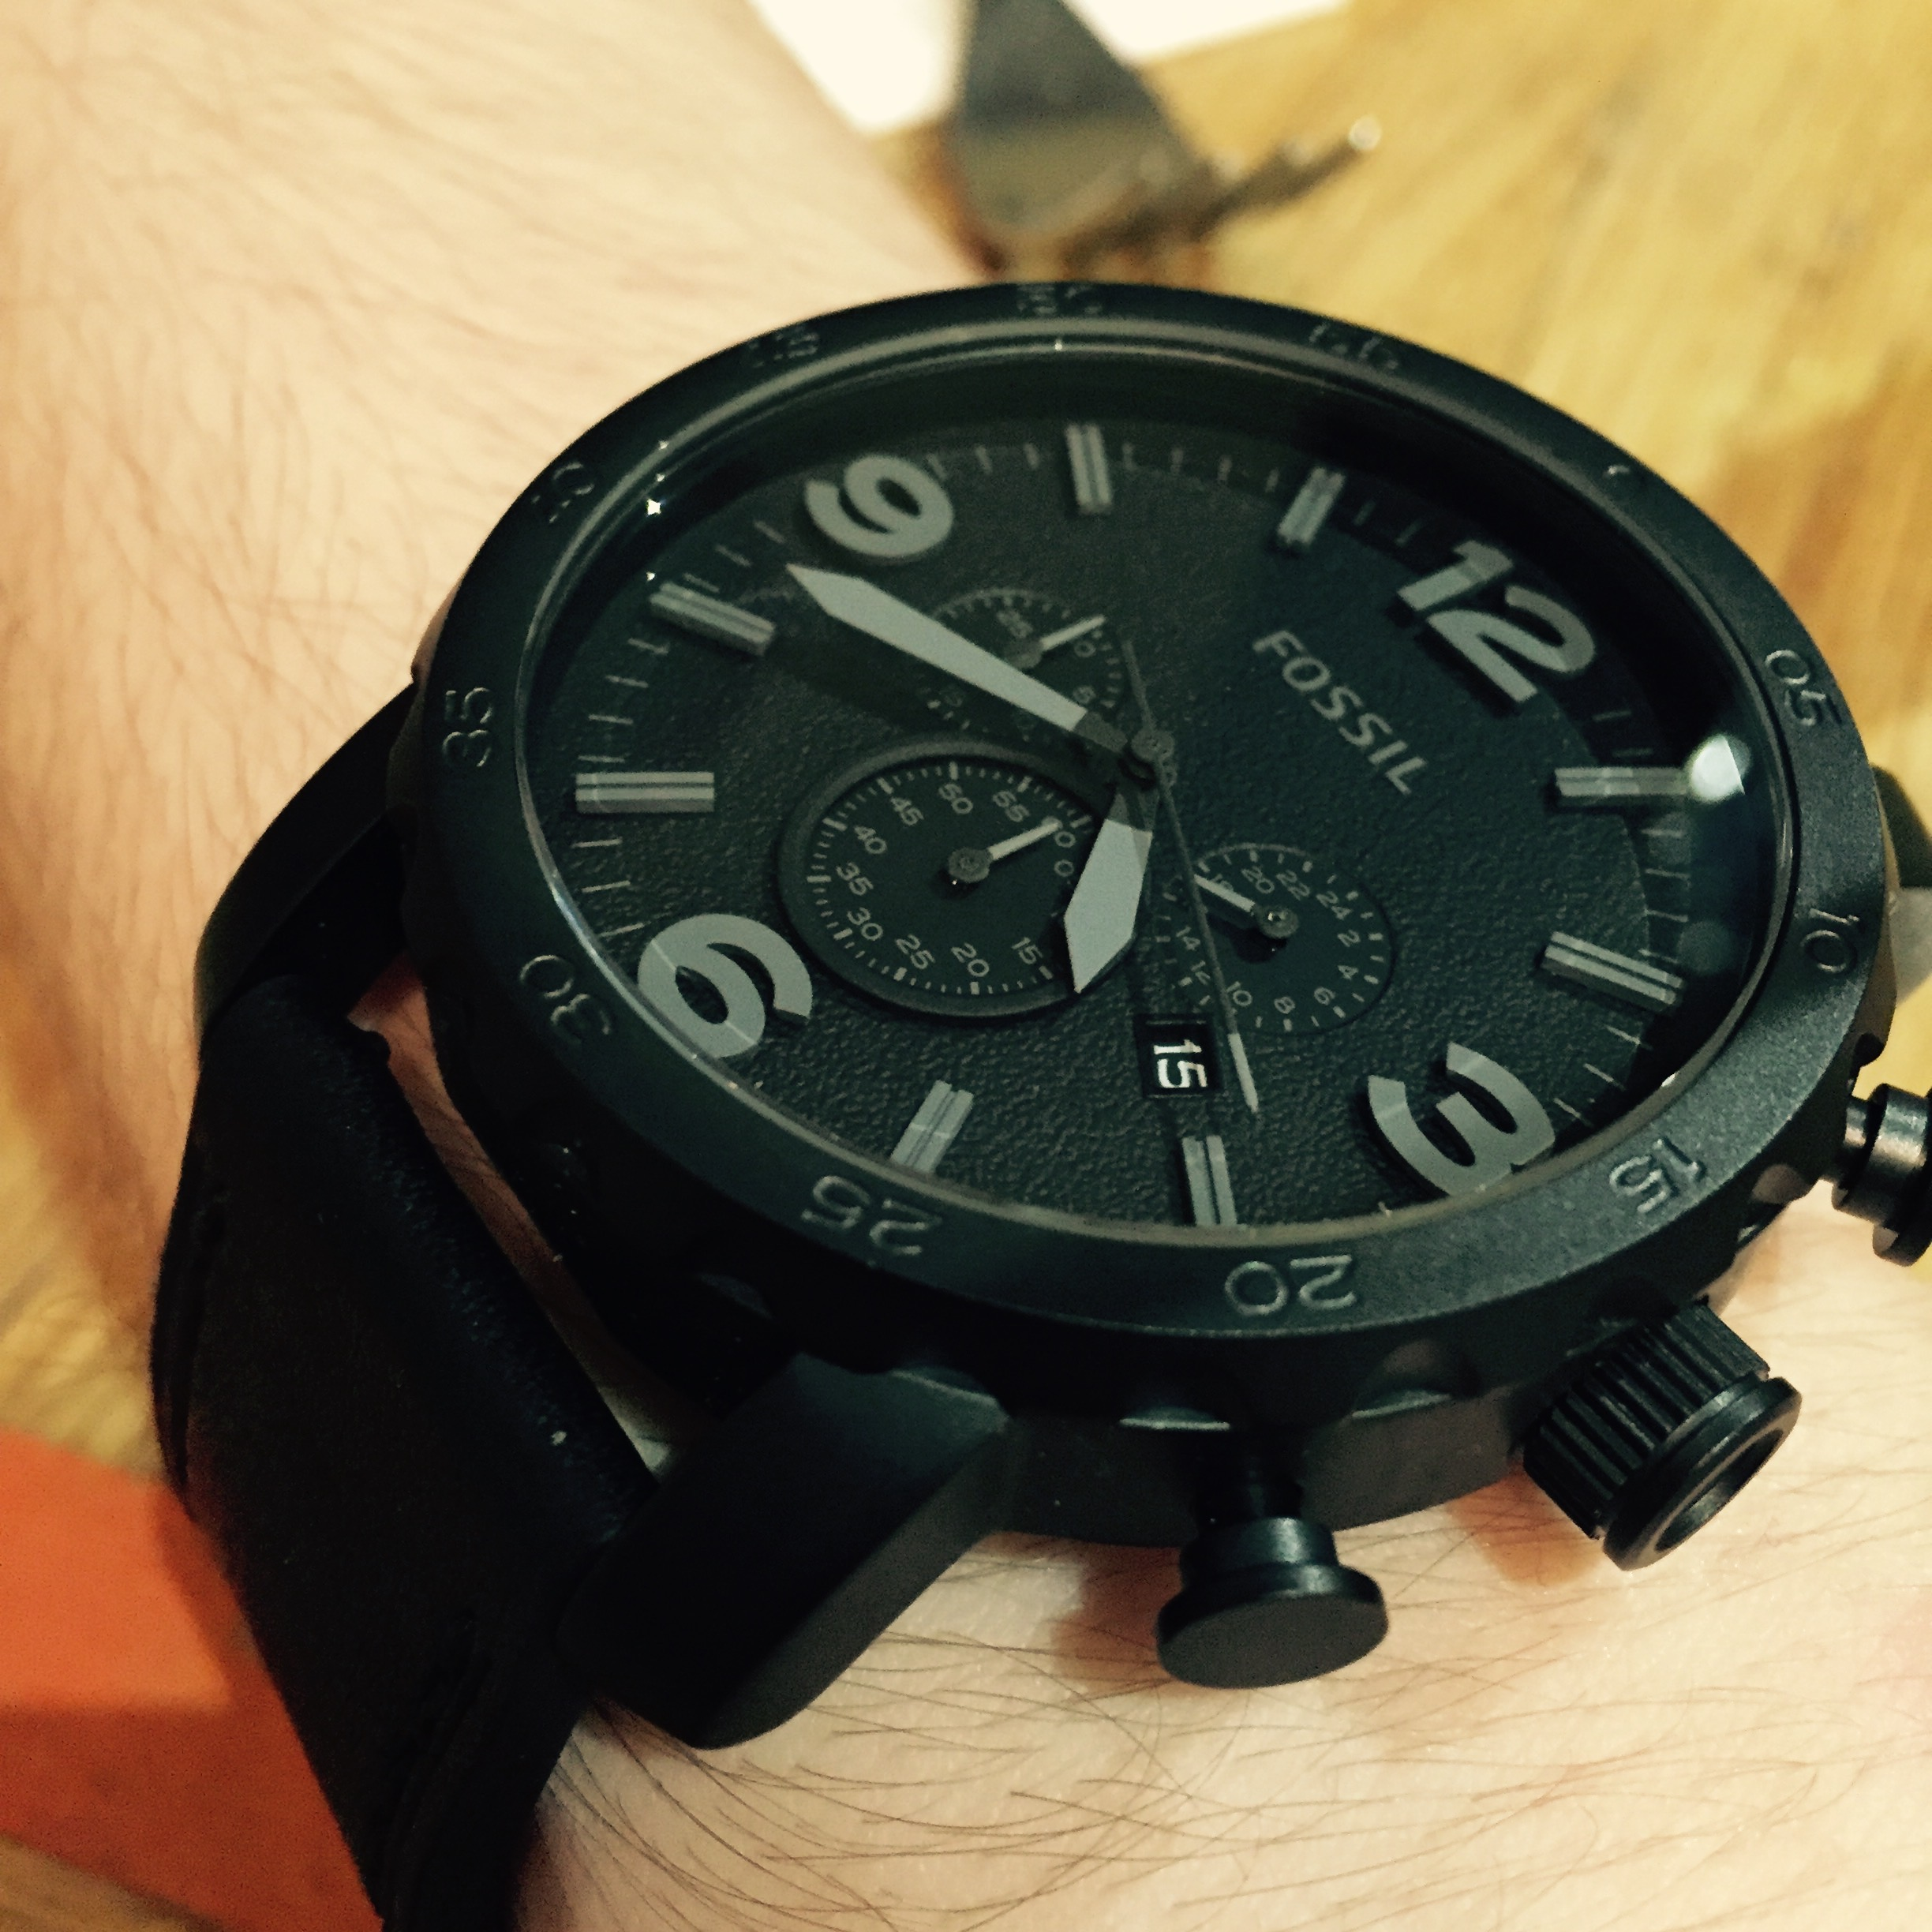 manly review calibre watches cal hands monochrome artelier oris